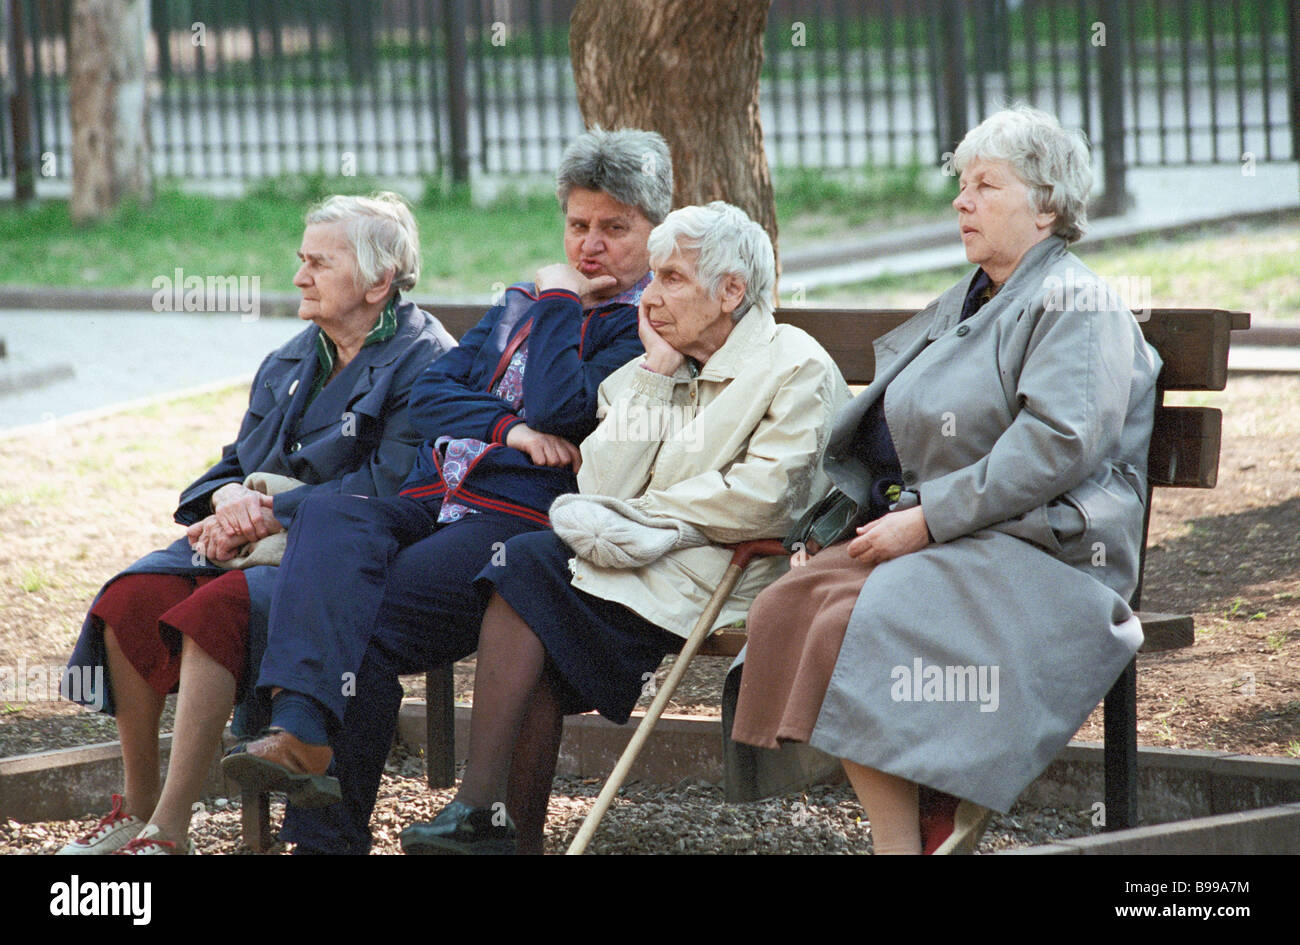 Elderly Moscow ladies sitting on a bench - Stock Image